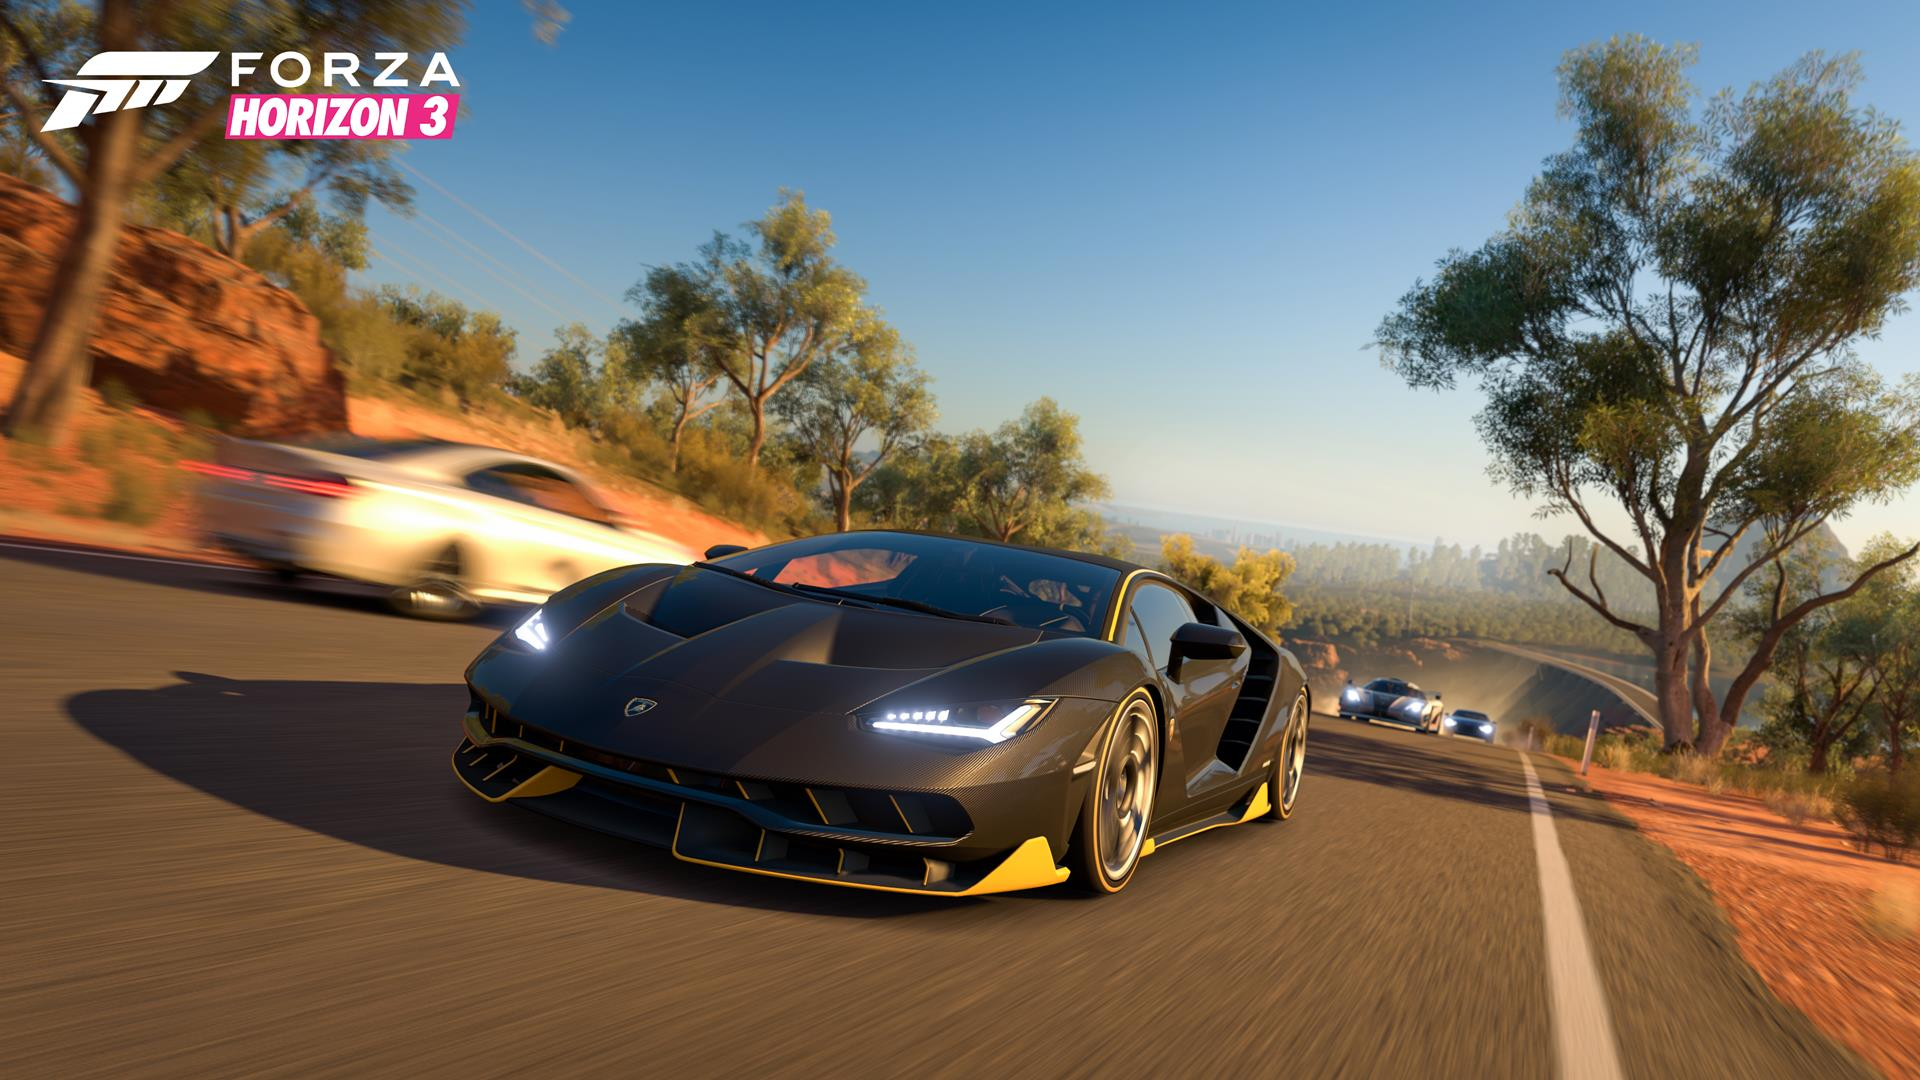 Forza Horizon 3 Gets Free 4K Patch for the Xbox One X